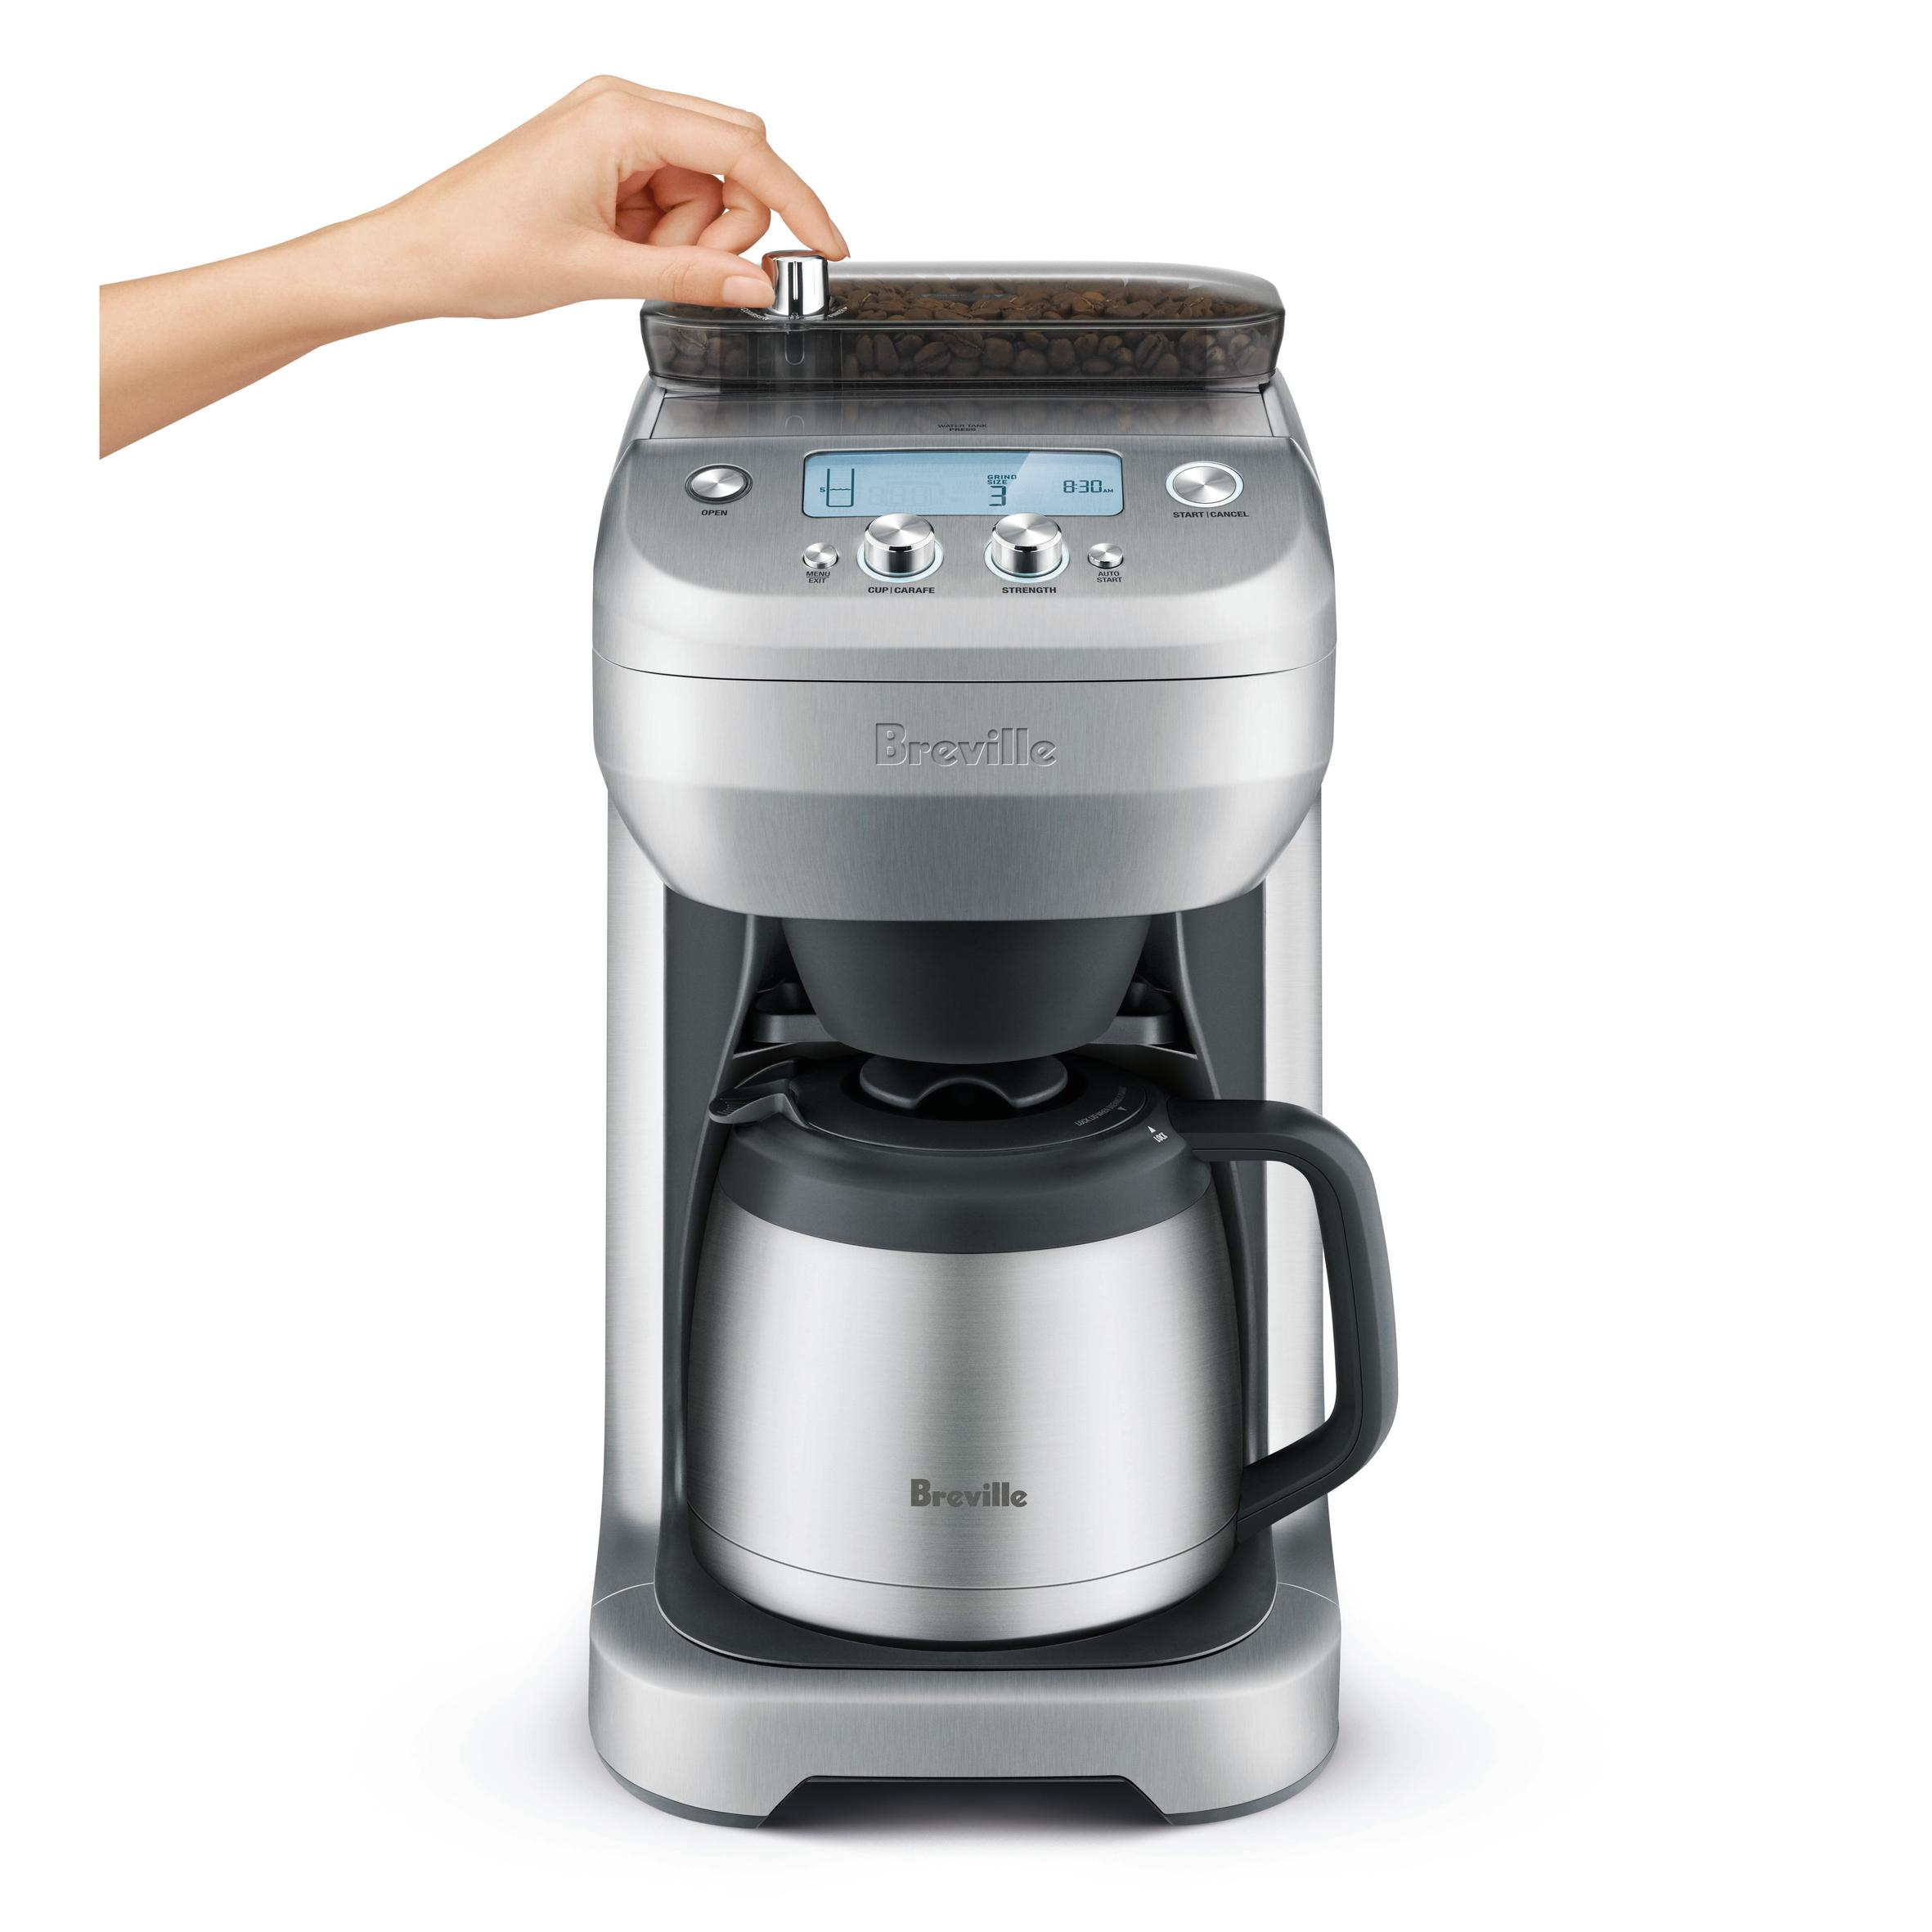 Breville Electric Coffee Maker : Breville BDC650BSS The Grind Control Drip Coffee Maker: Amazon.ca: Home & Kitchen